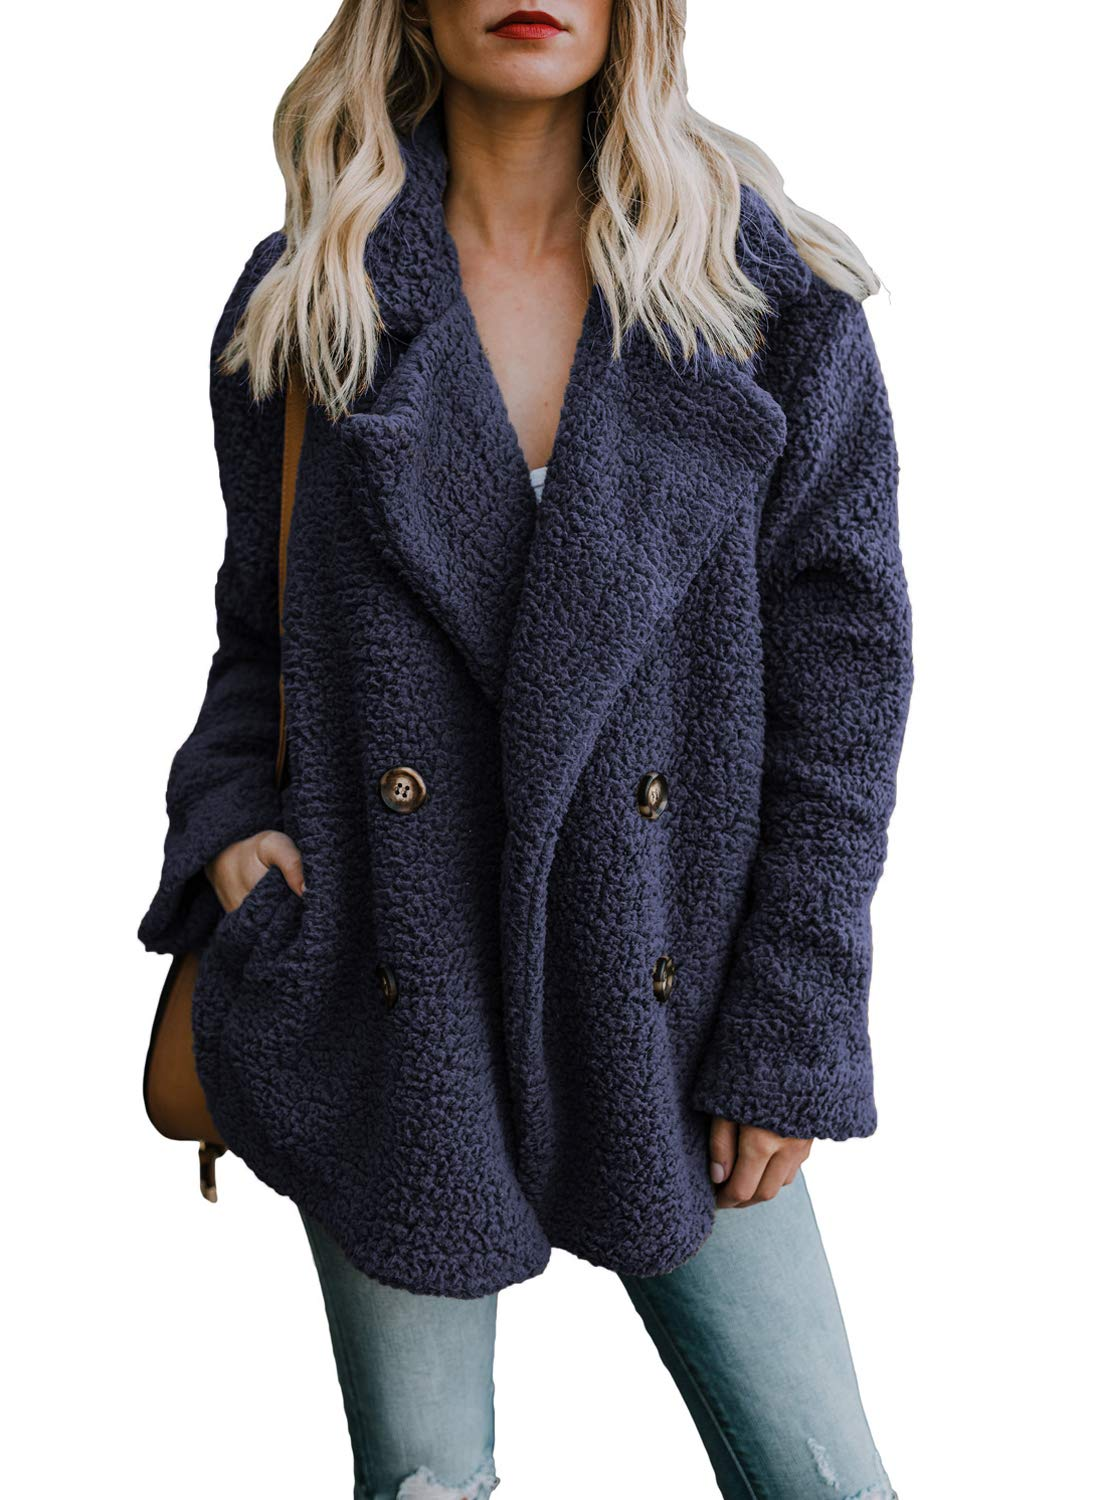 Dokotoo Womens Jackets Coats Elegant Solid Sherpa Fleece Open Front Loose Long Sleeve Casual Winter Ladies Coats Fashion Fluffy Cardigans Outerwear Jackets with Pockets Navy Medium by Dokotoo